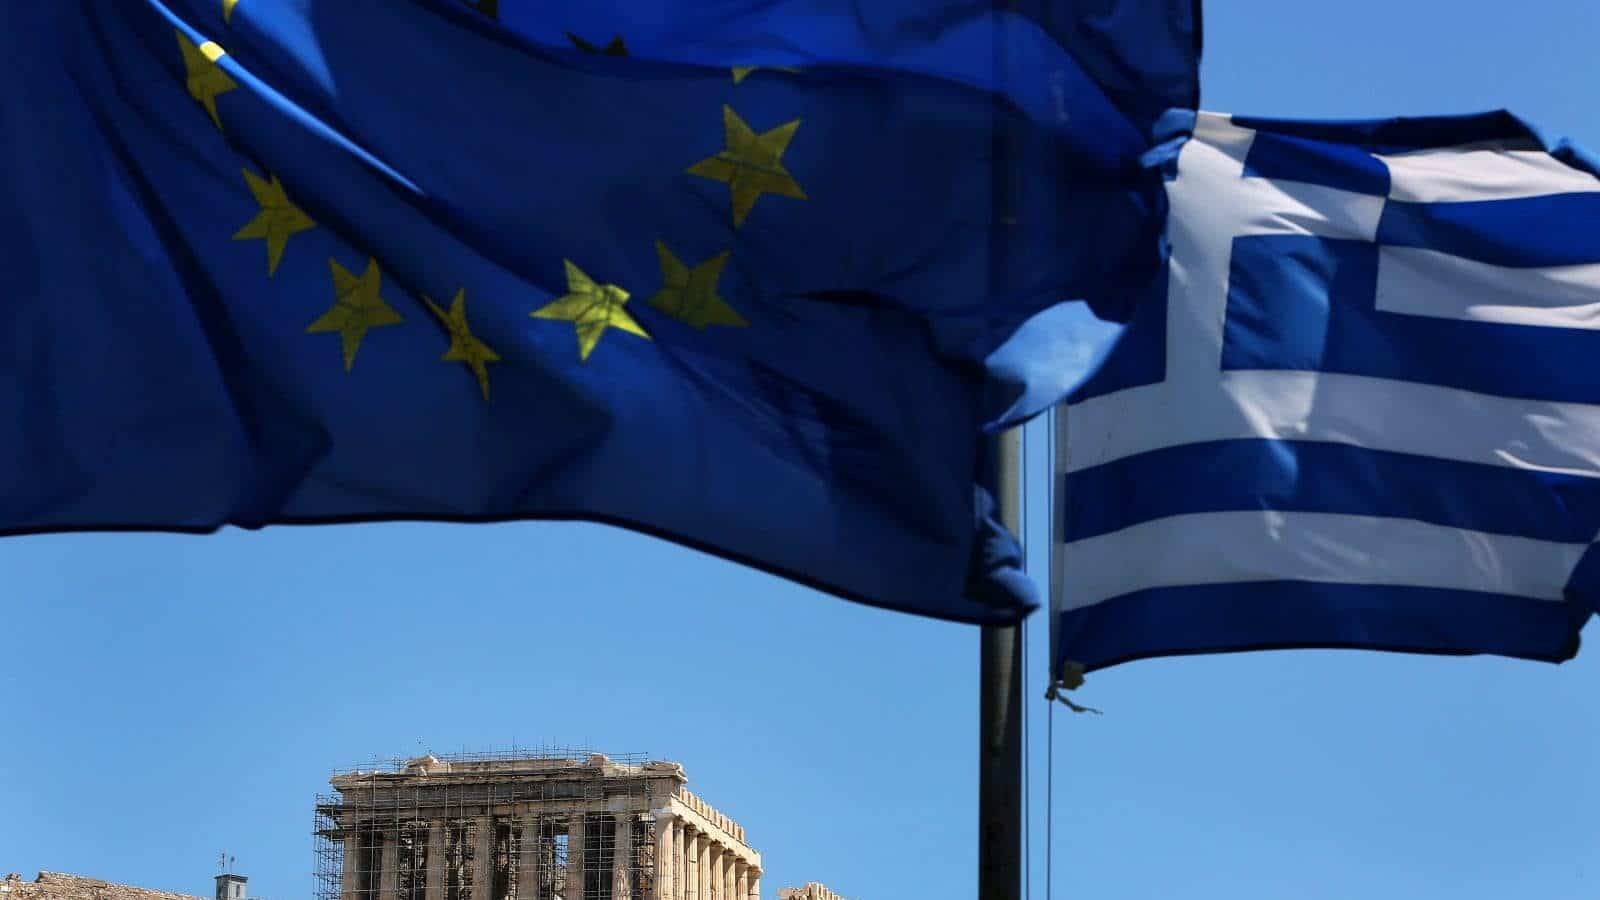 Under Greece's New Government, Its Future Remains Uncertain | Balkan Insight